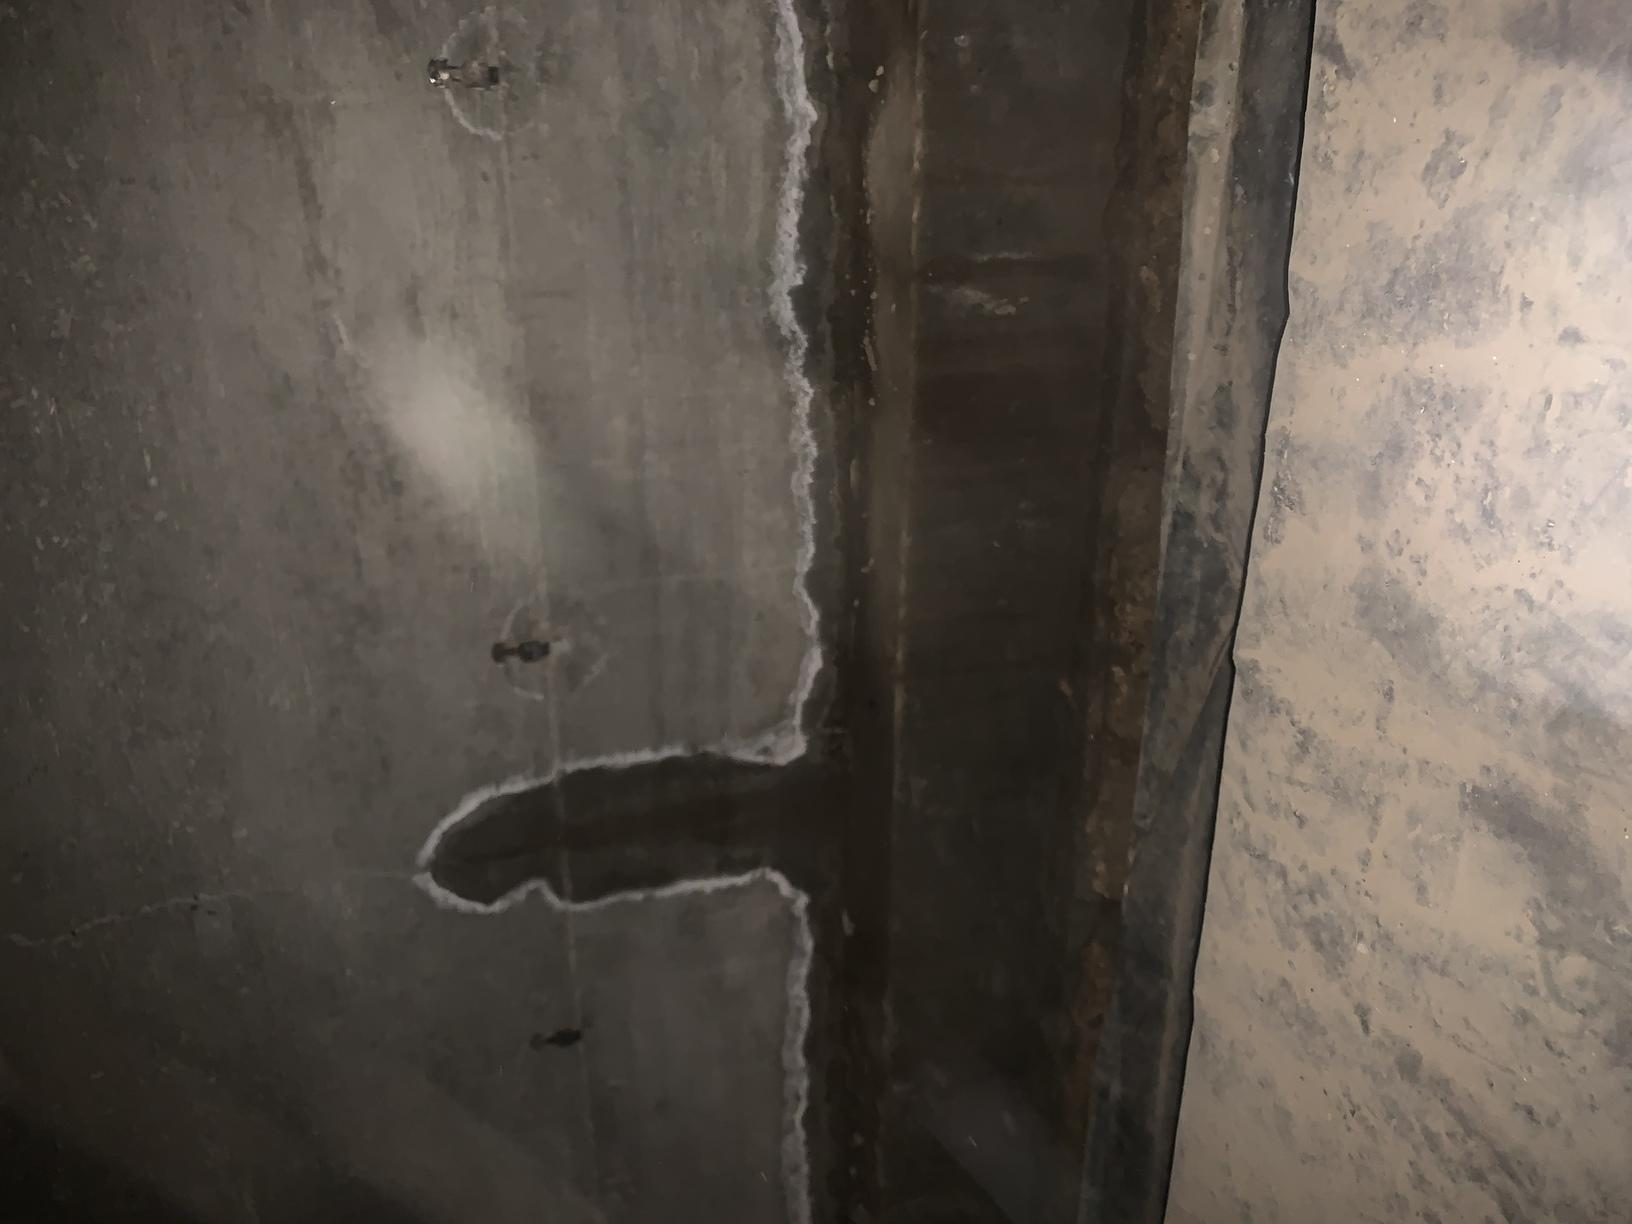 Evidence of water intrusion